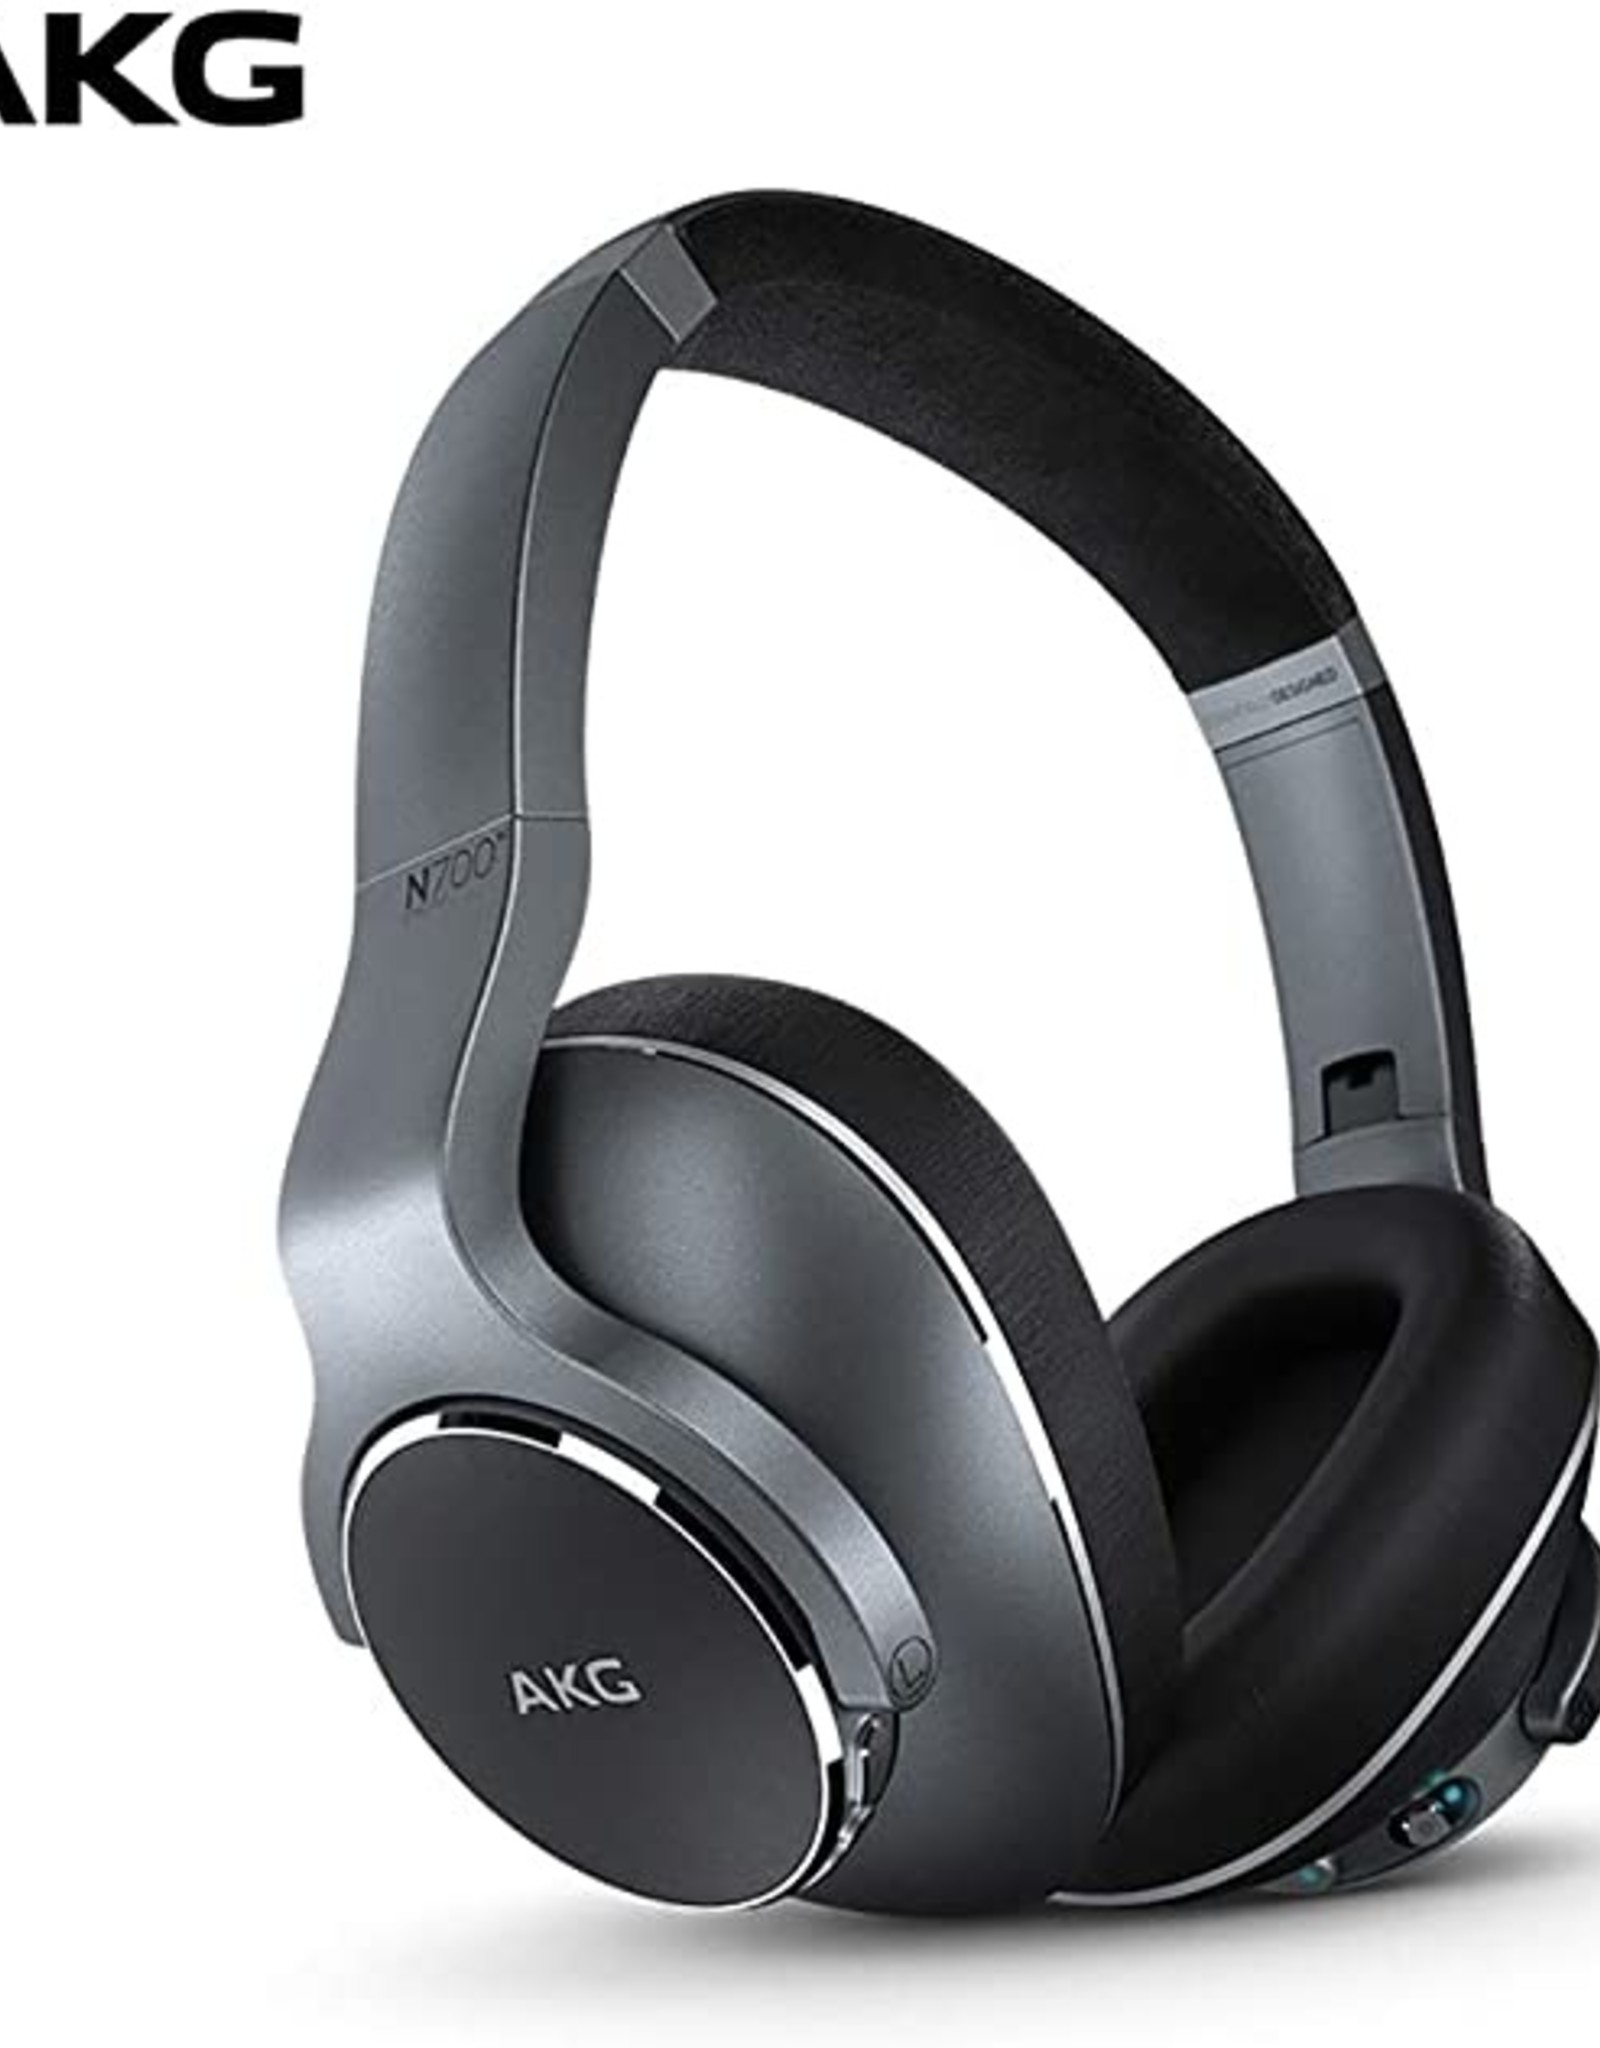 AKG AKG N700NC | Headphones with mic - on-ear - Bluetooth - wireless - active noise canceling - 3.5 mm jack - noise isolating